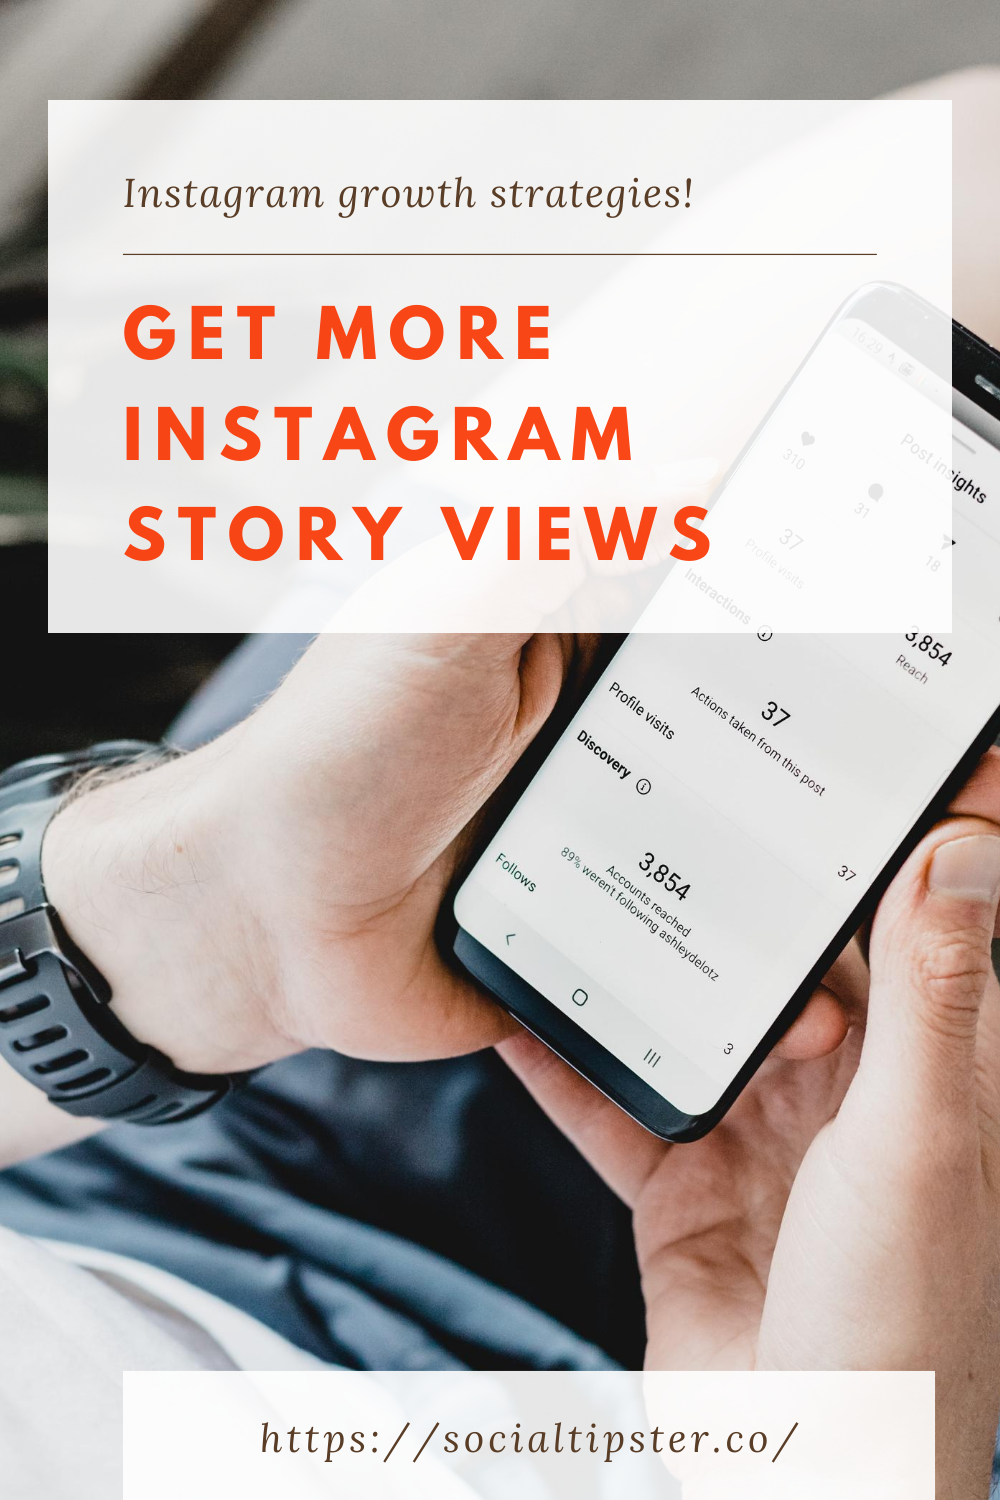 Get More Instagram Story Views